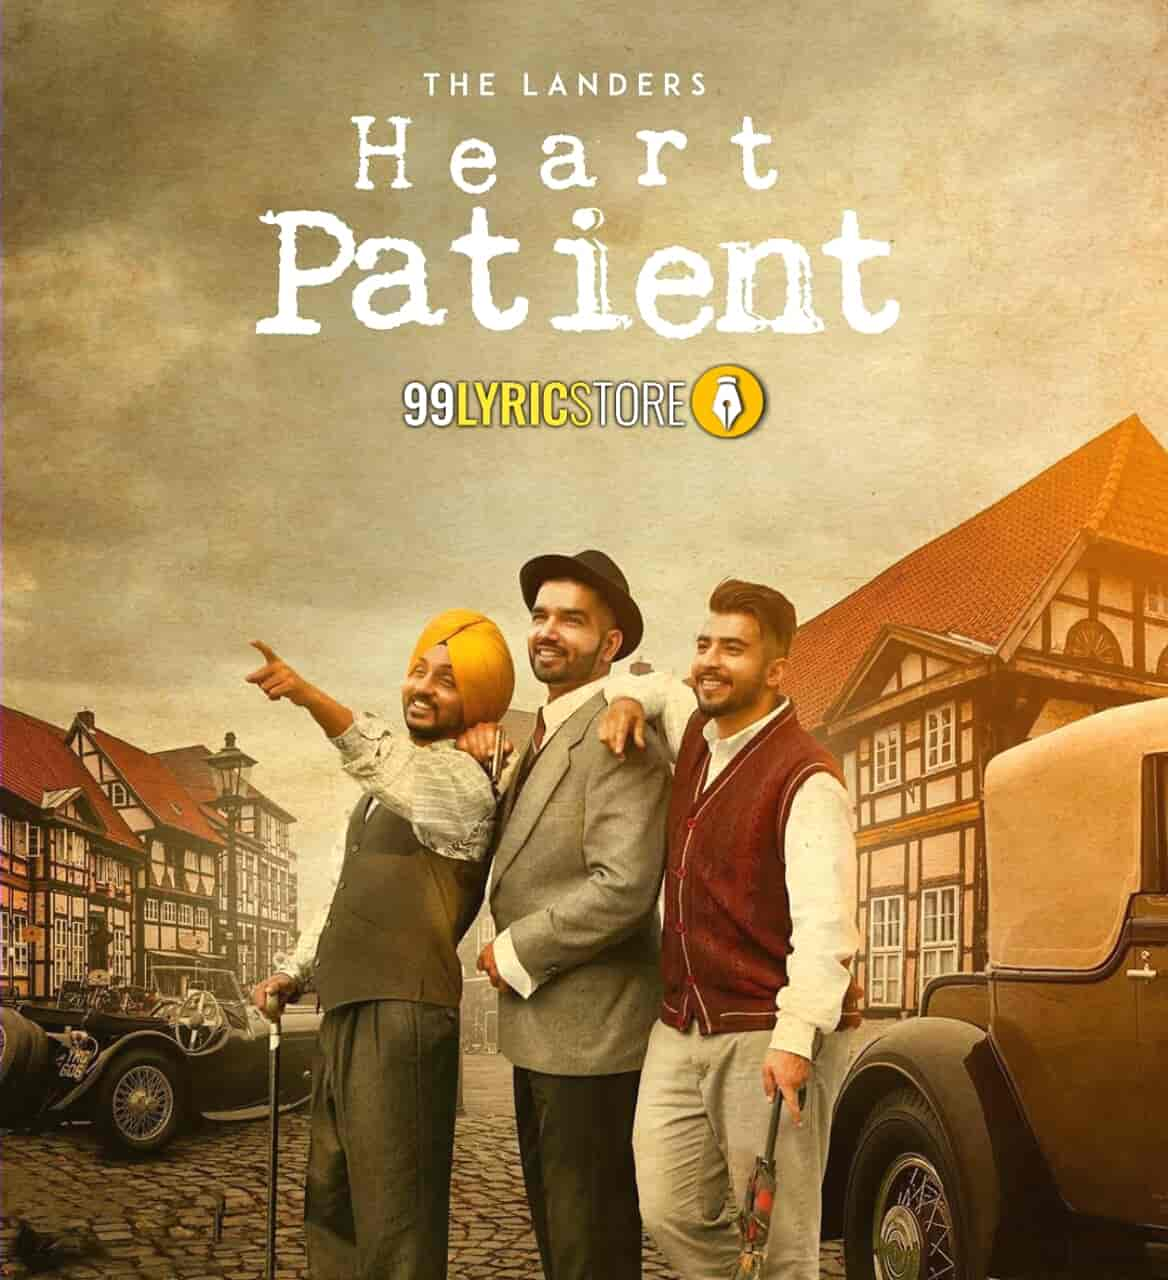 Heart Patient punjabi song sung by The Landers